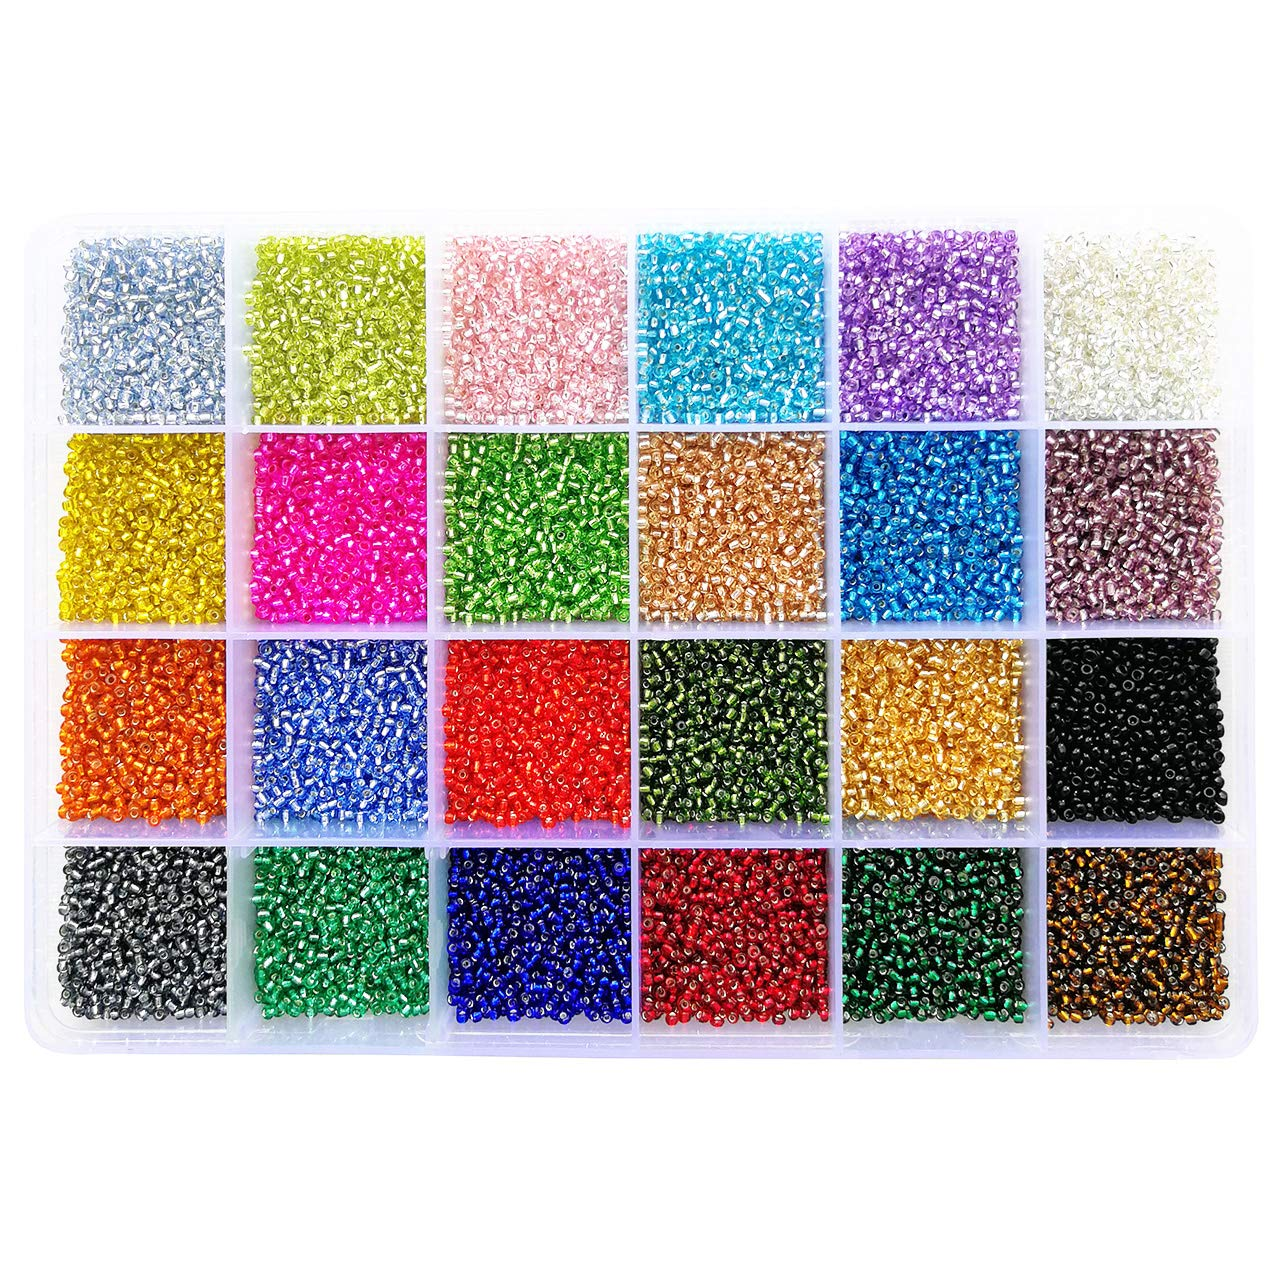 PandaHall Elite 12 Boxes of About 2040 Pcs 6//0 Multicolor Beading Glass Seed Beads12 Colors Silver Lined Round Pony Bead Mini Spacer Beads Diameter 4mm with Container Box for Jewelry Making